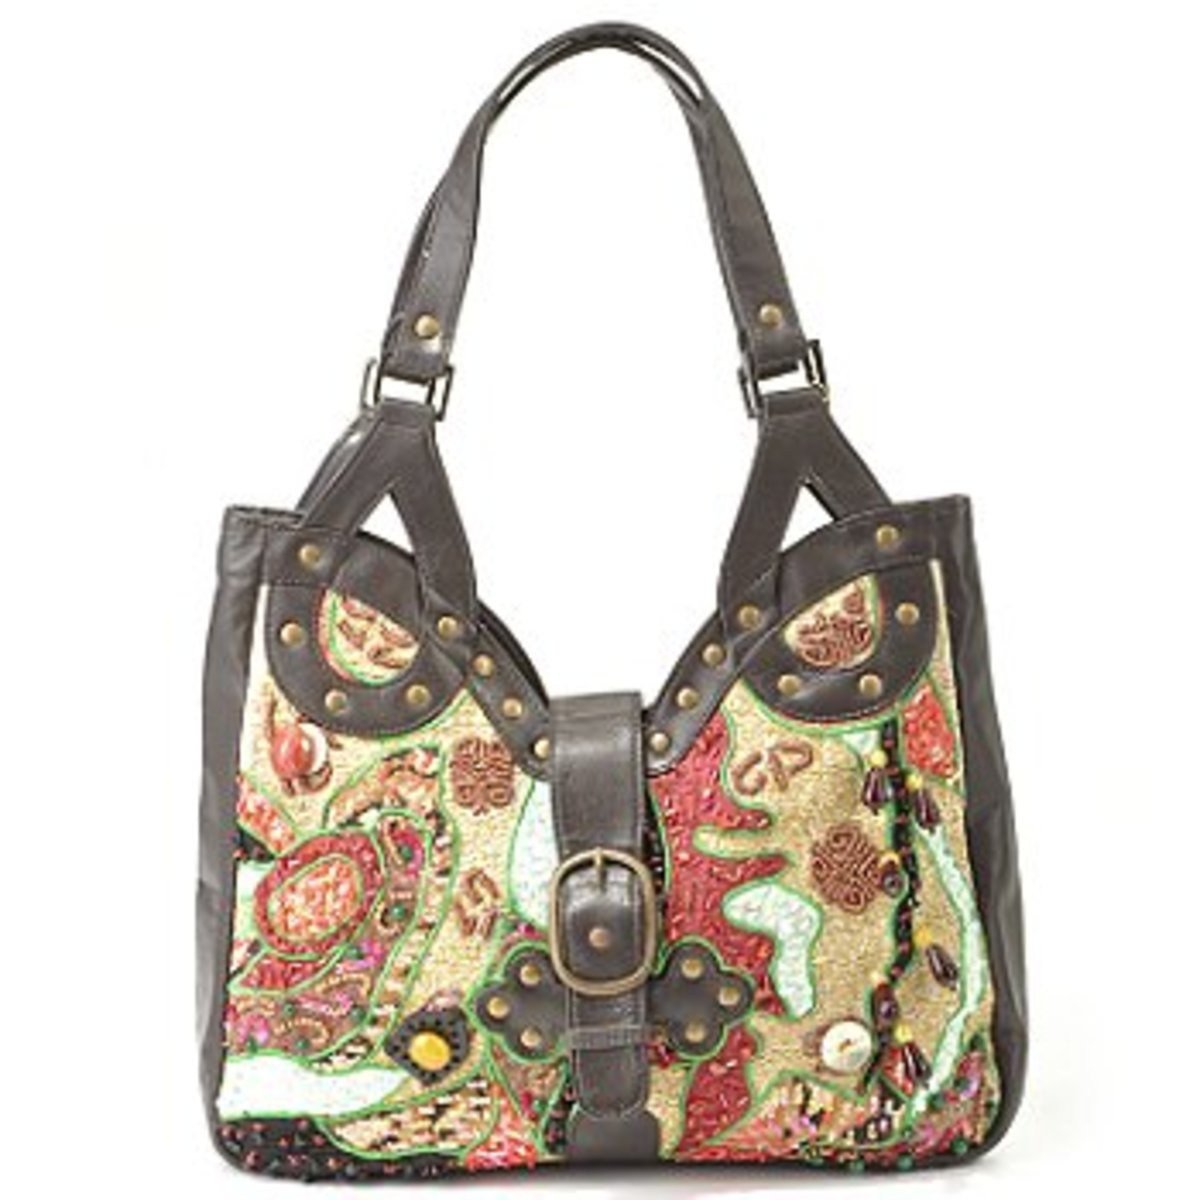 Mary Frances Bags - Great Empire - $208